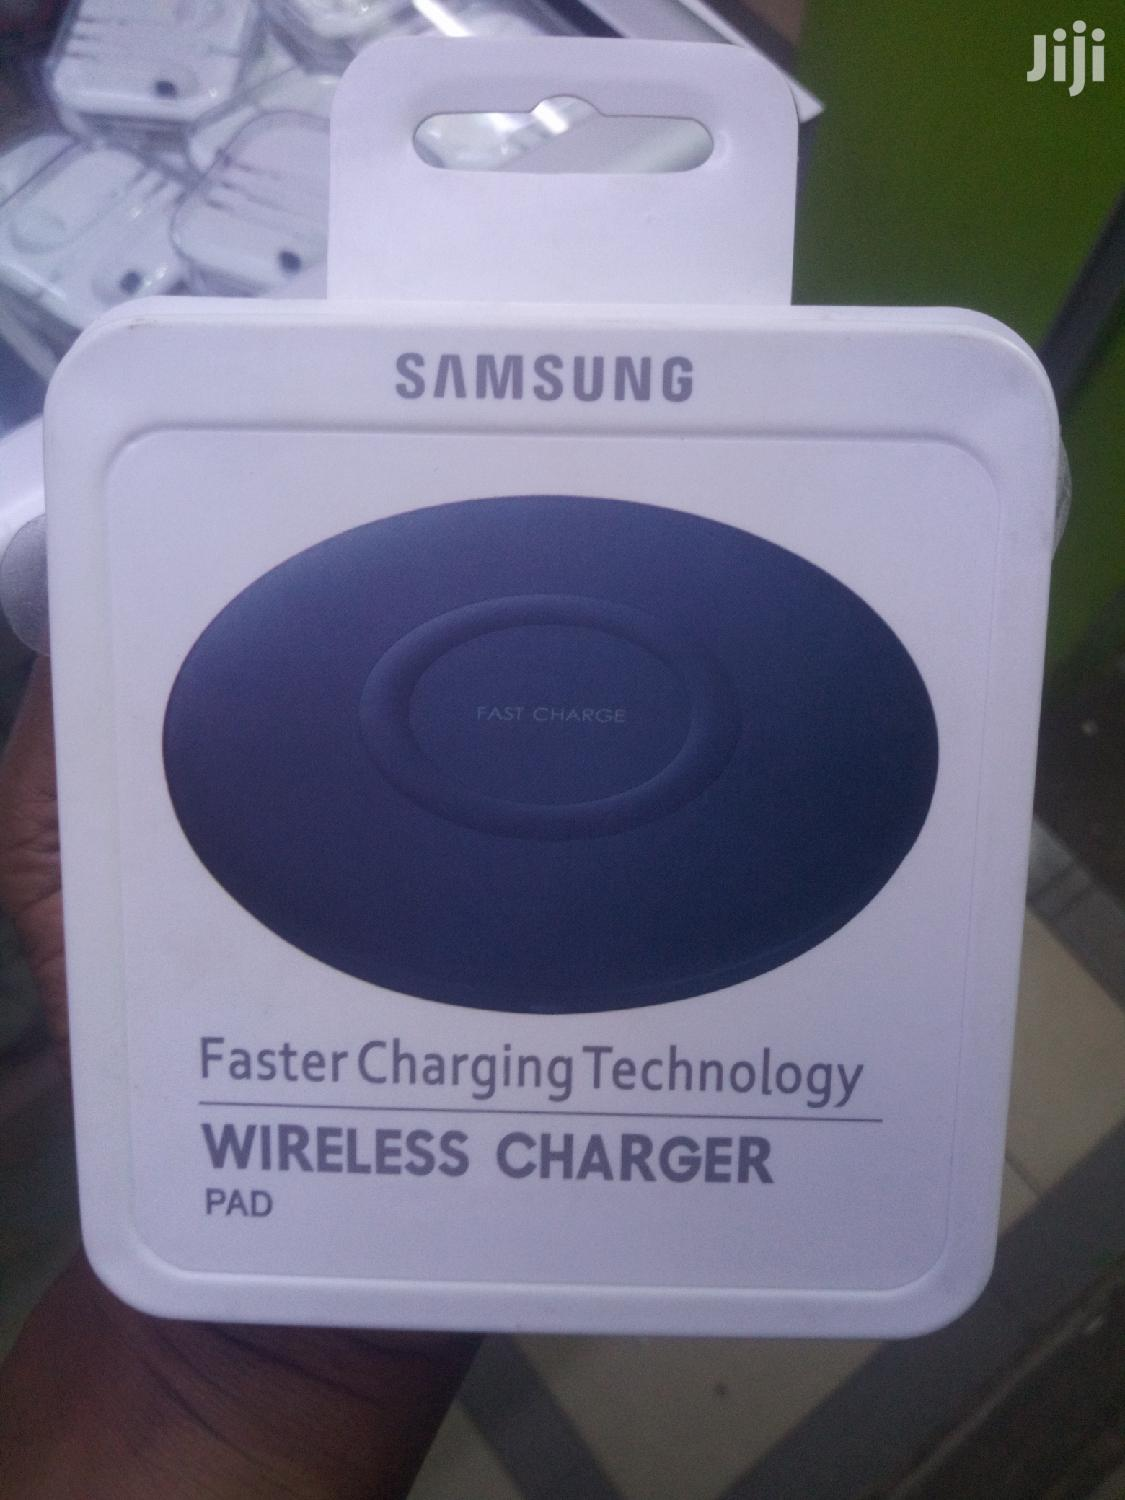 Samsung Wireless Charger Faster Charging Technology | Accessories for Mobile Phones & Tablets for sale in Nairobi Central, Nairobi, Kenya